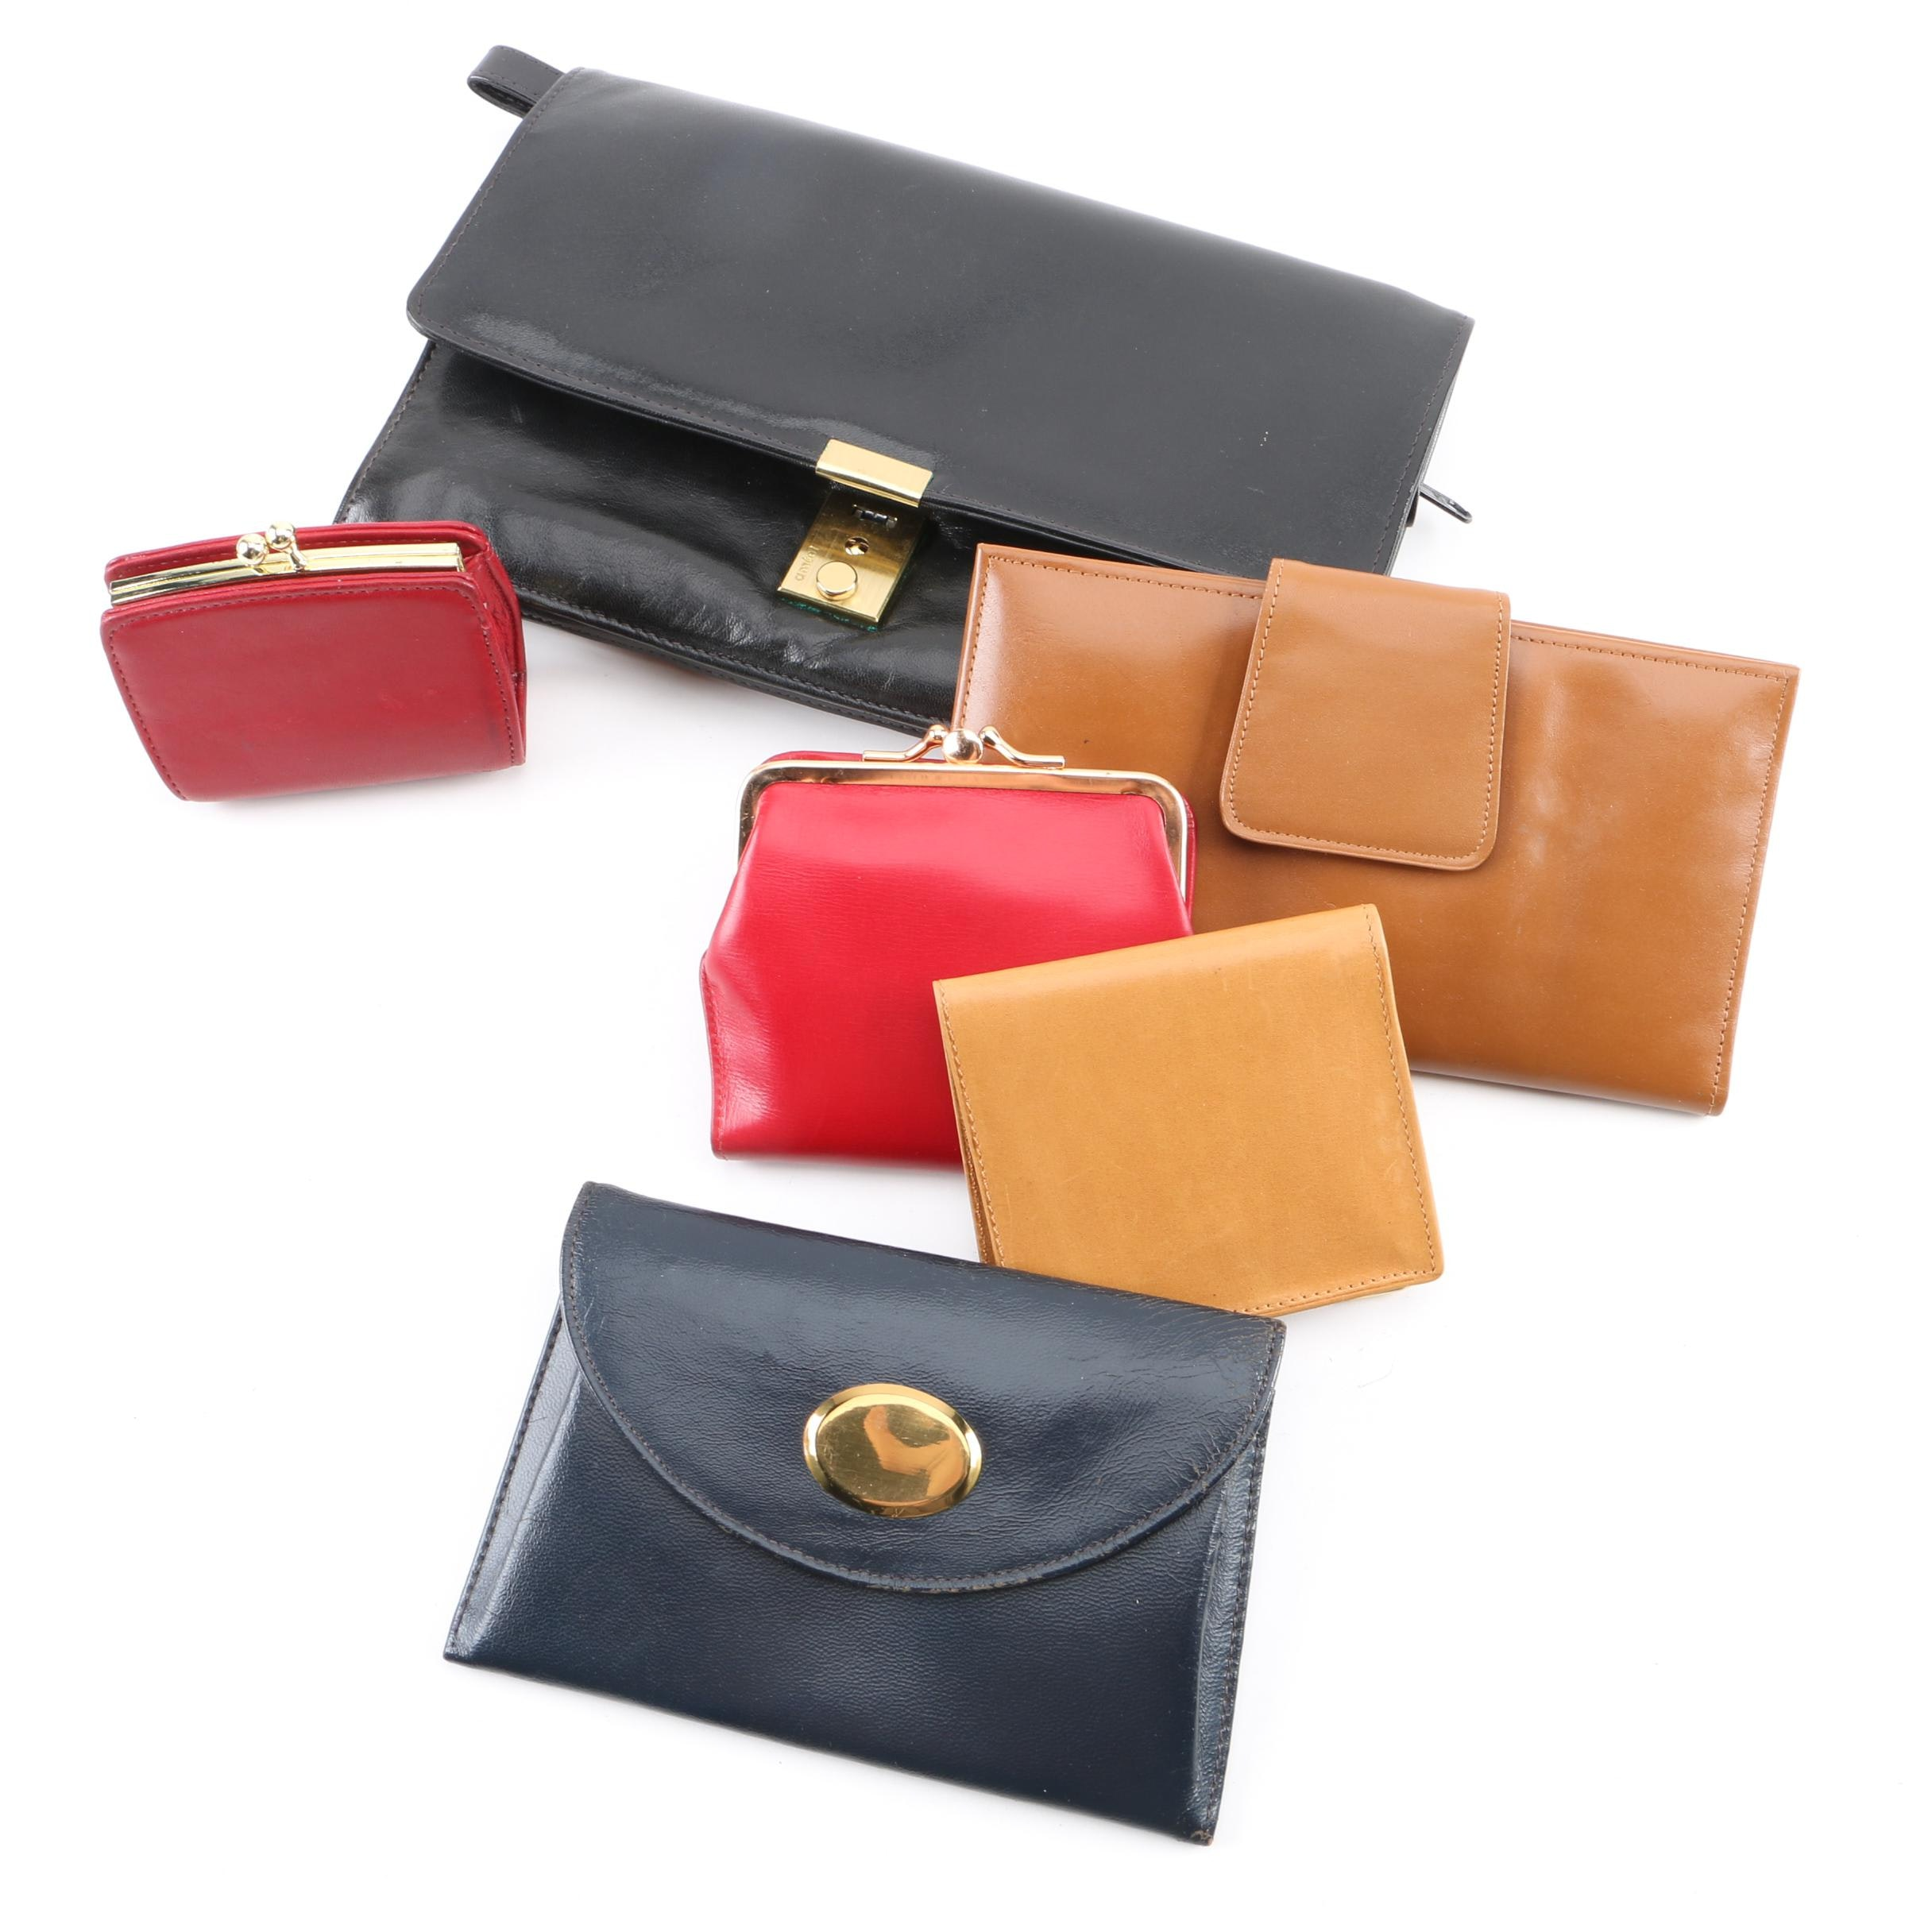 Vintage Leather Wallets Including Cartier, Dunhill, Coach and Buxton